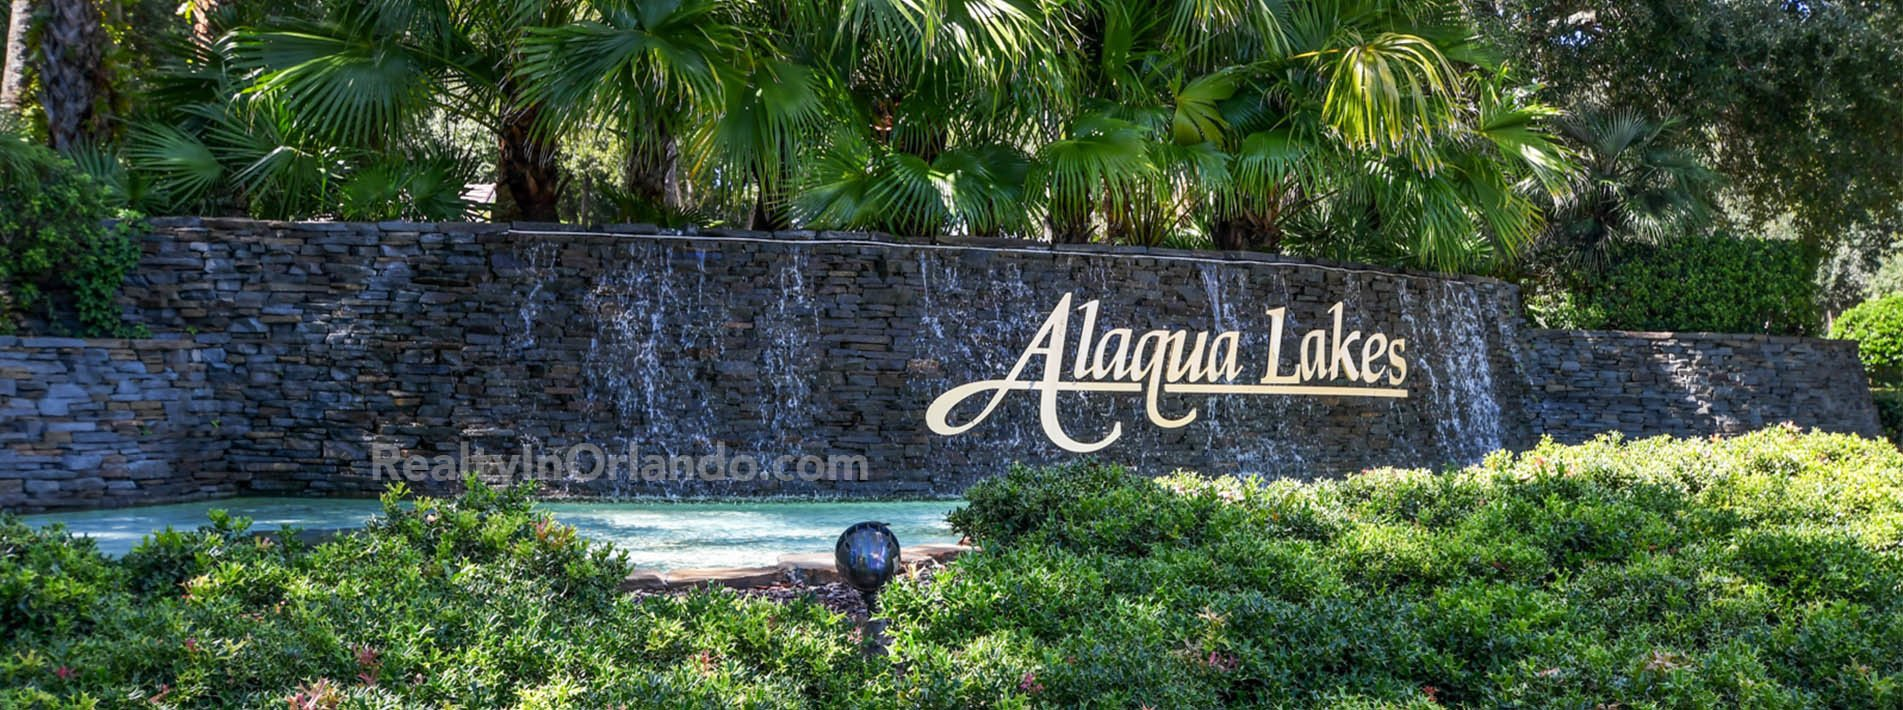 Alaqua Lakes Real Estate